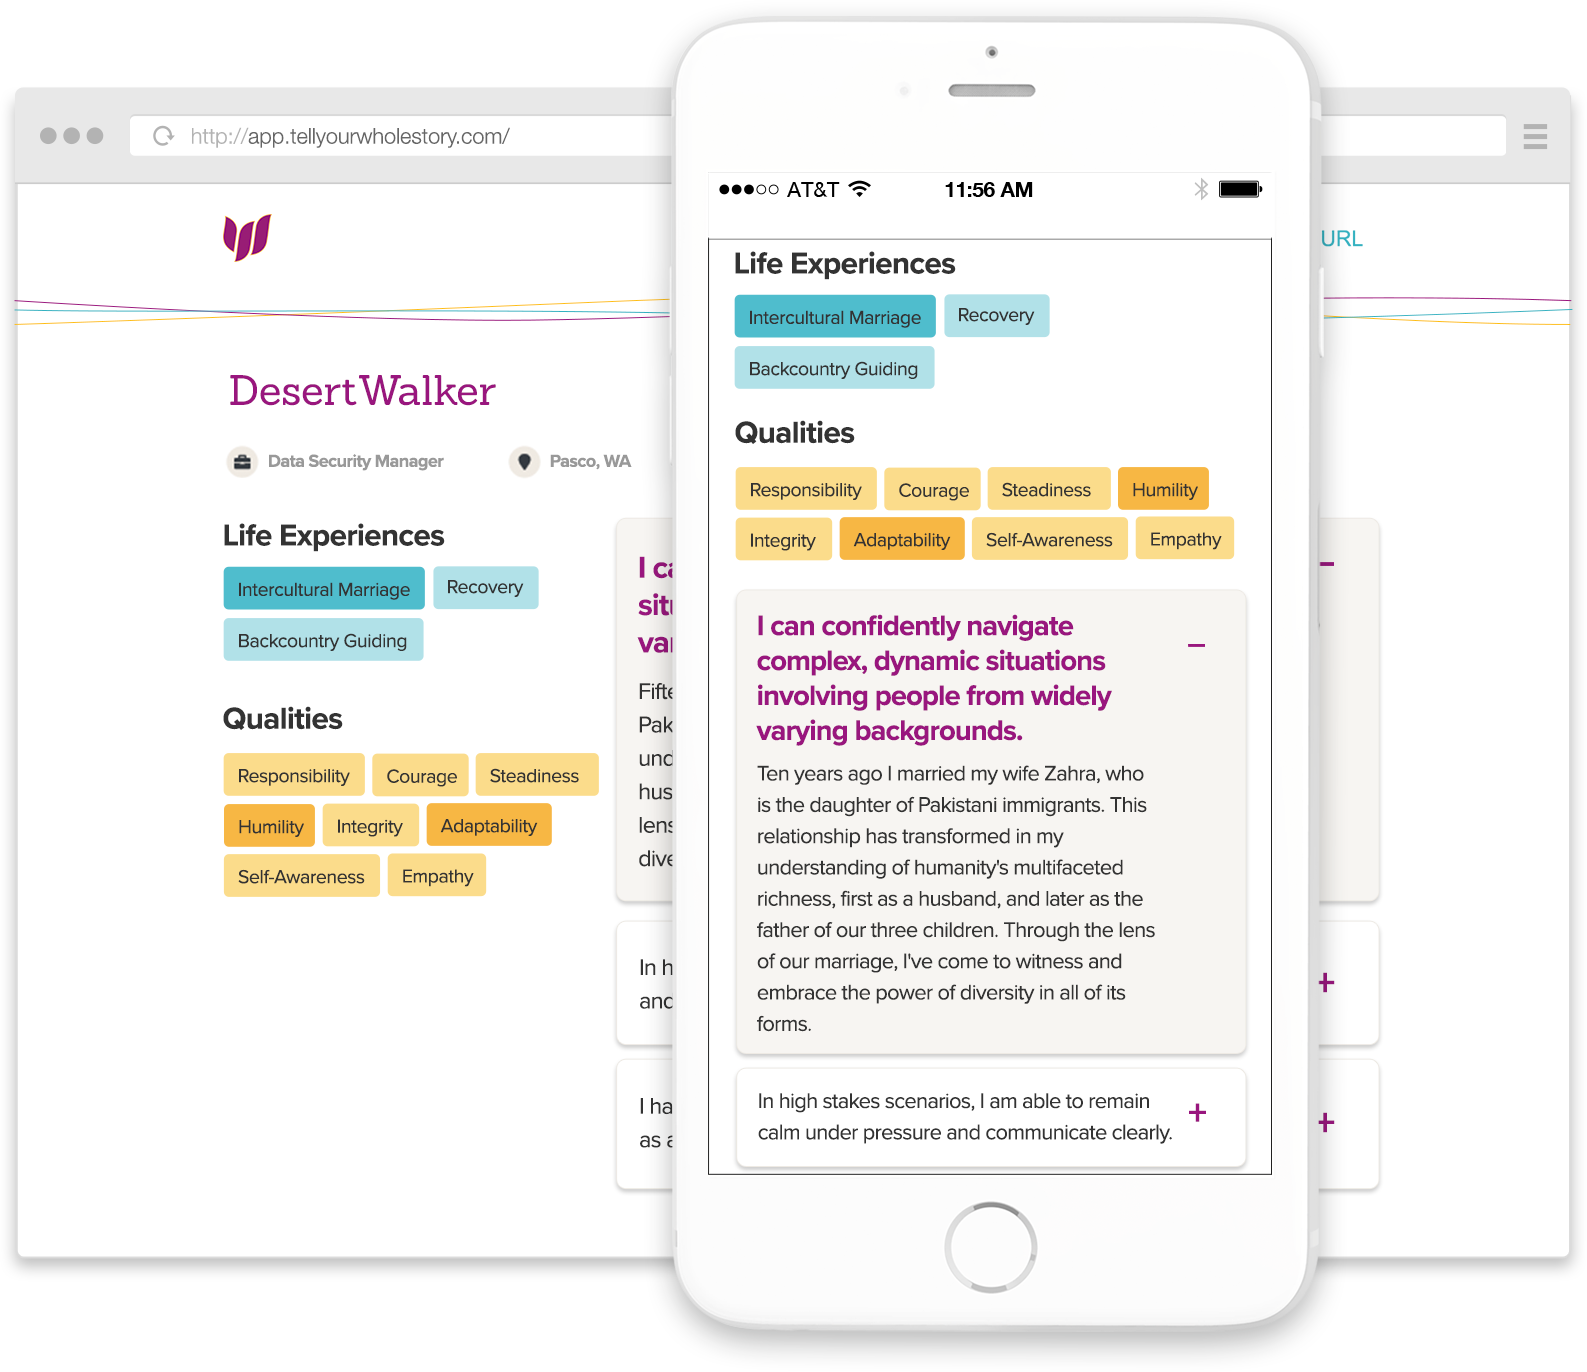 WholeStory profile with mobile and desktop views